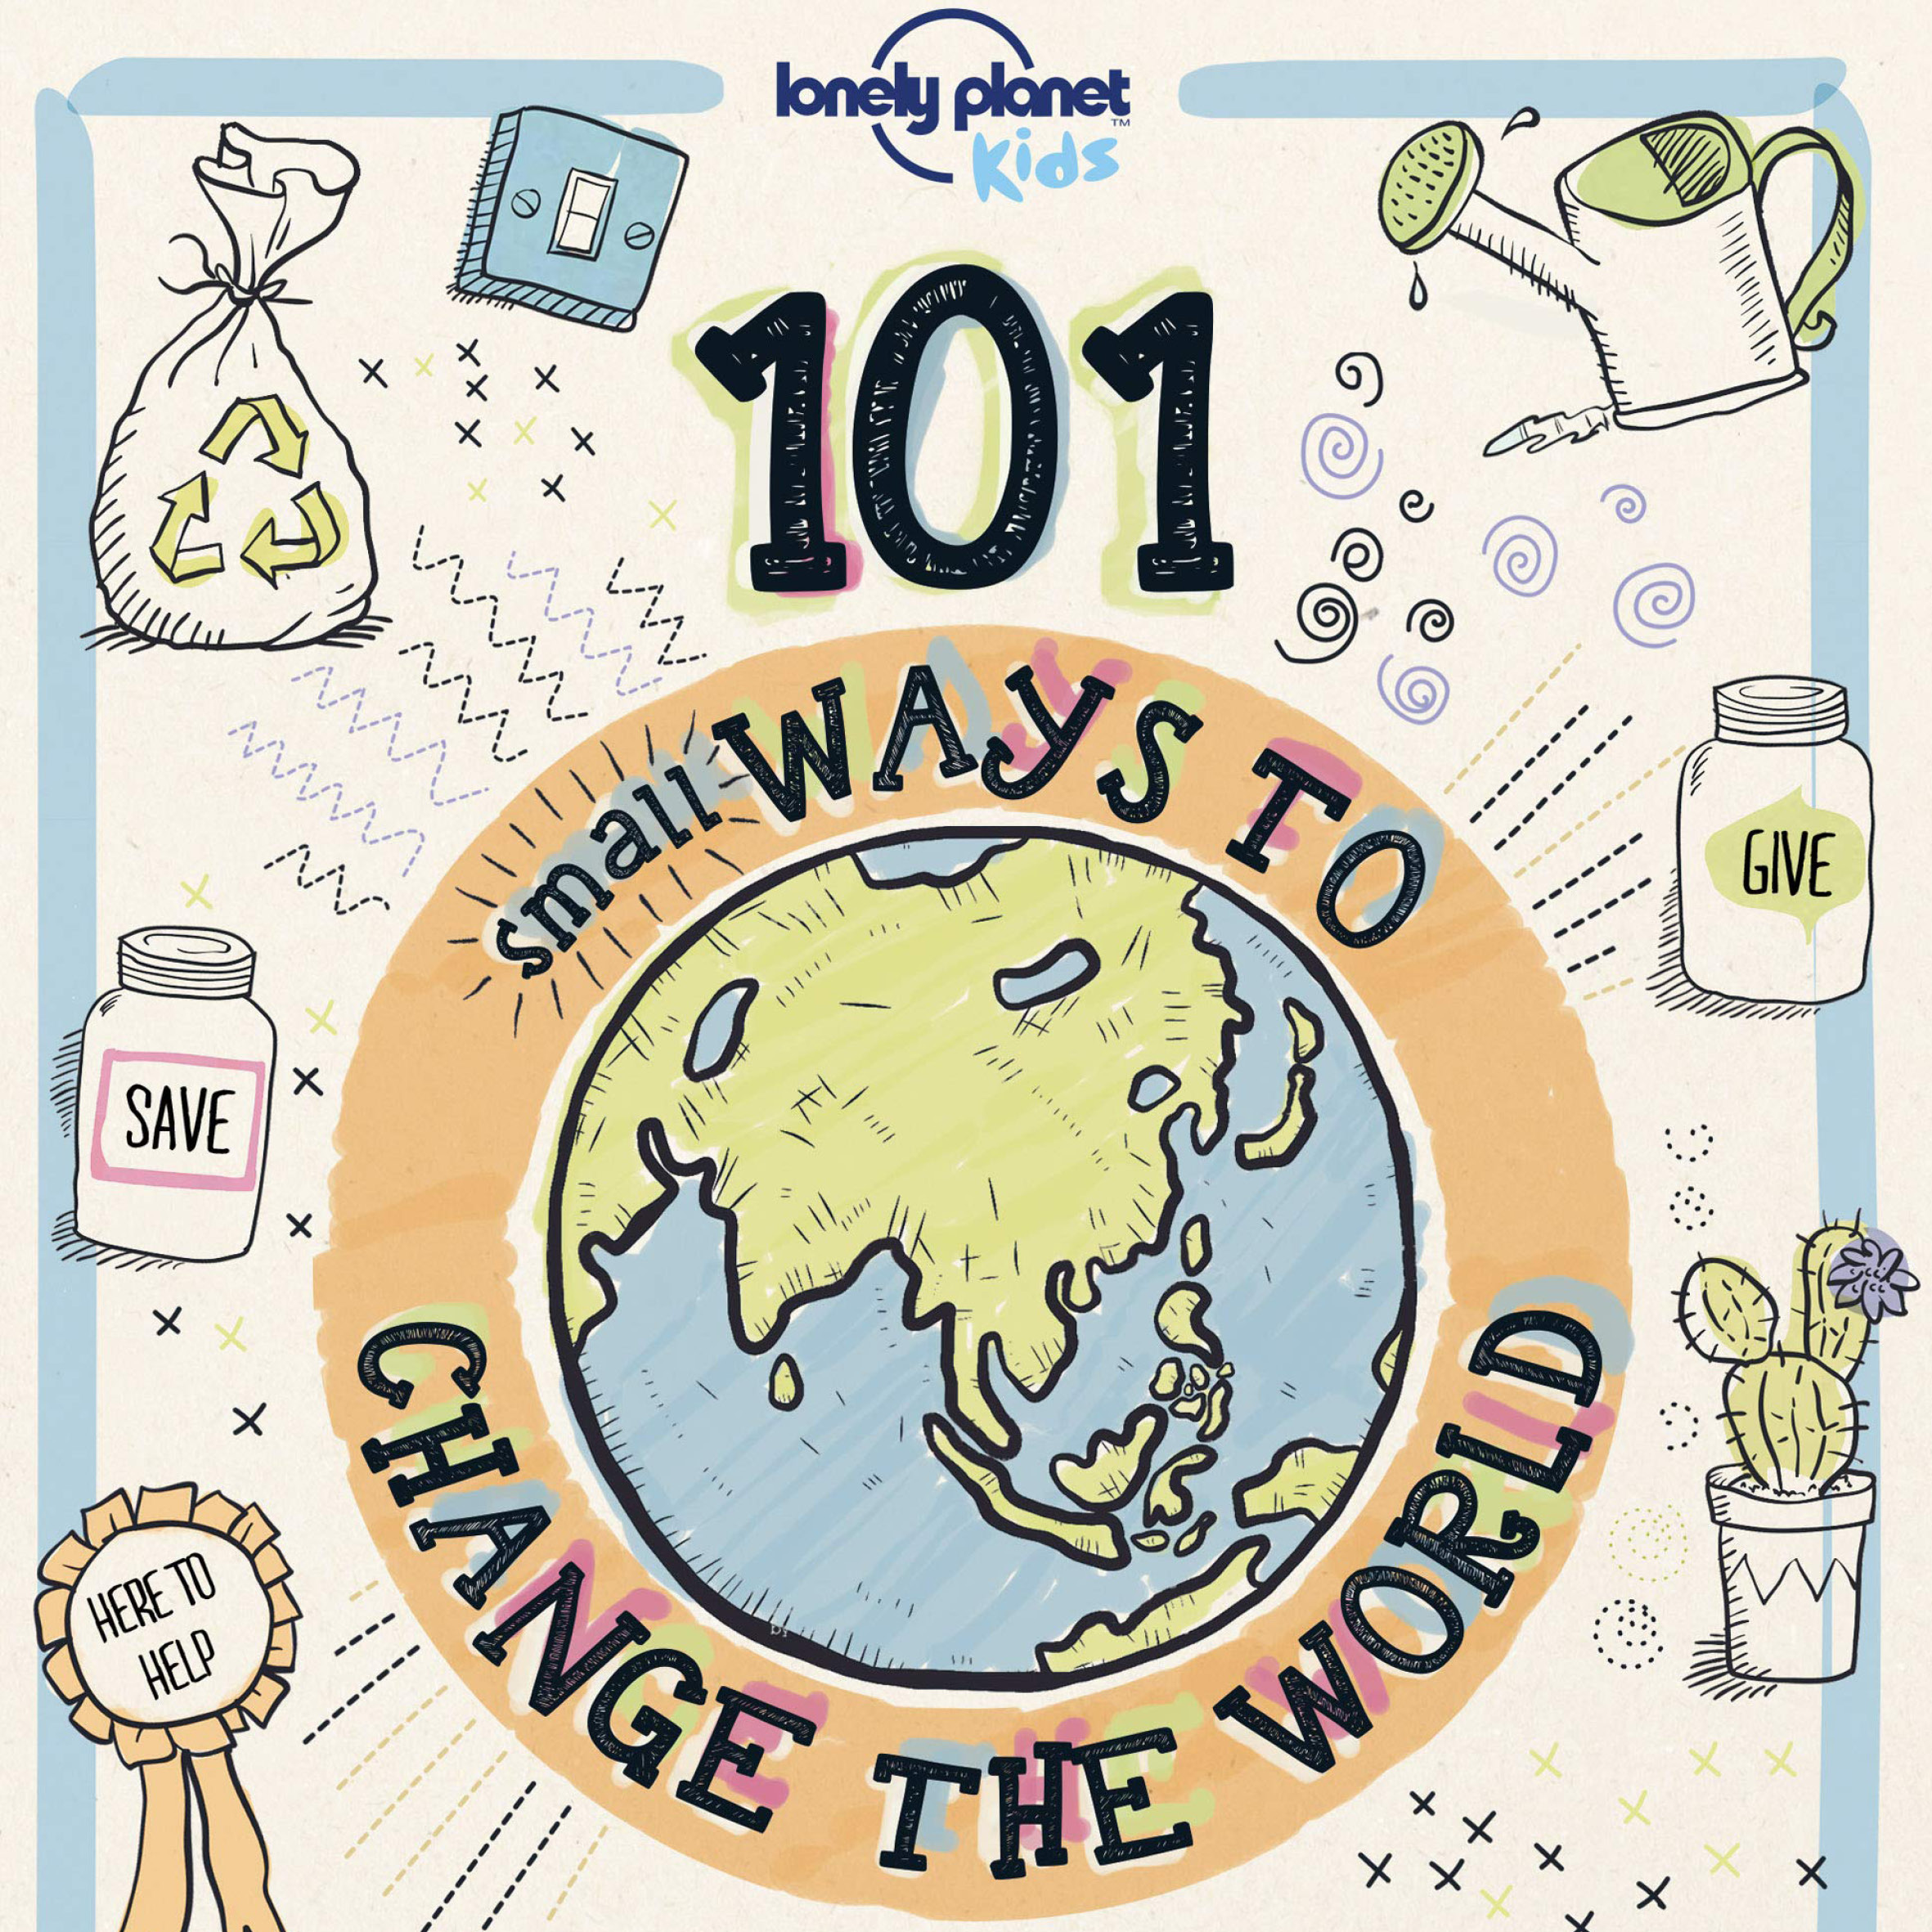 74 Dynamo Lonely Planet 101 Small Ways_T